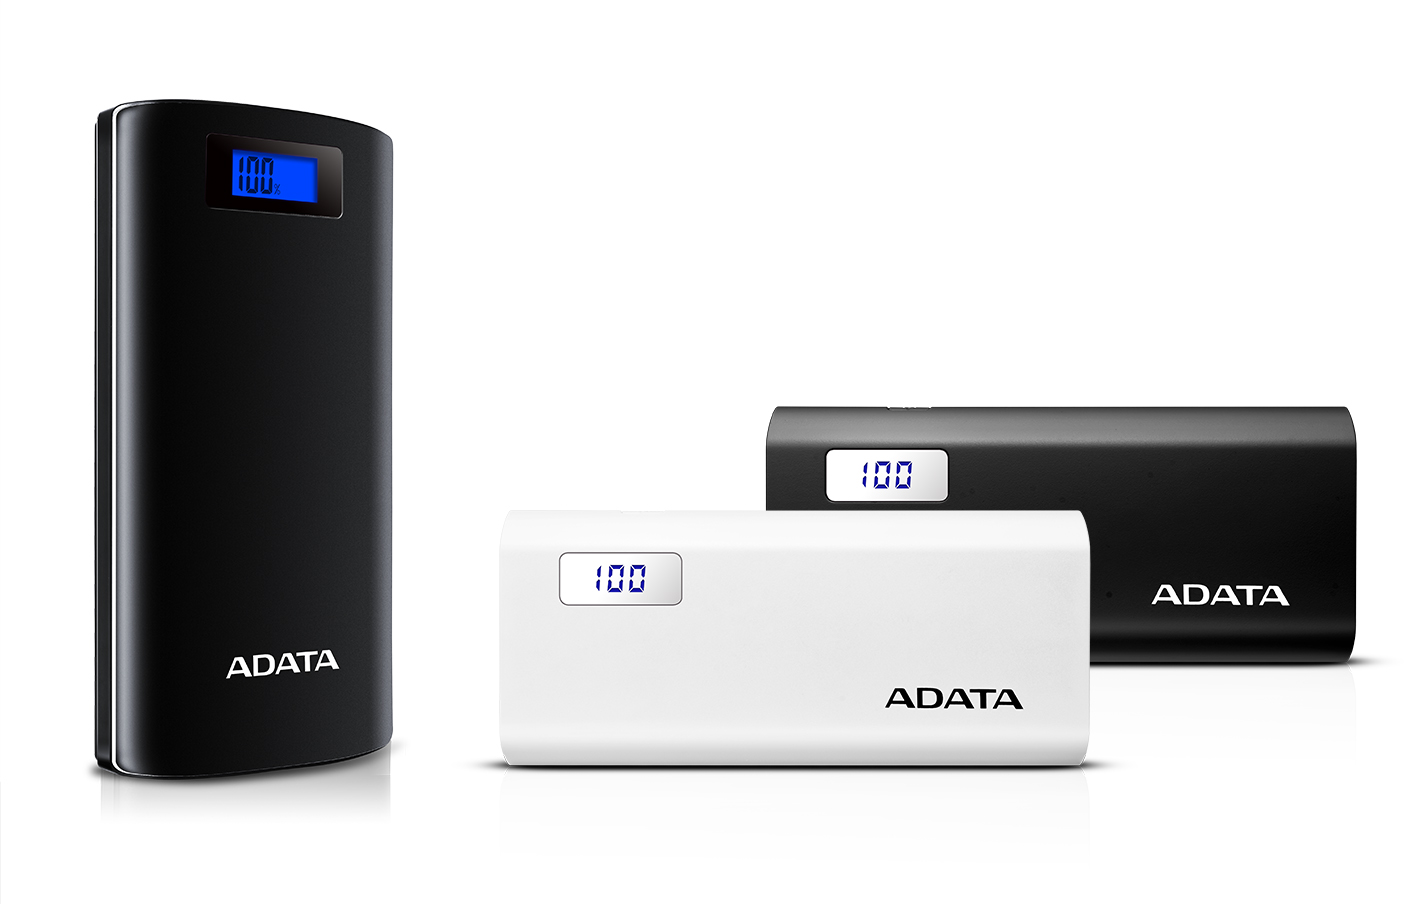 ADATA P20000D and P12500D Digital Display Power Banks